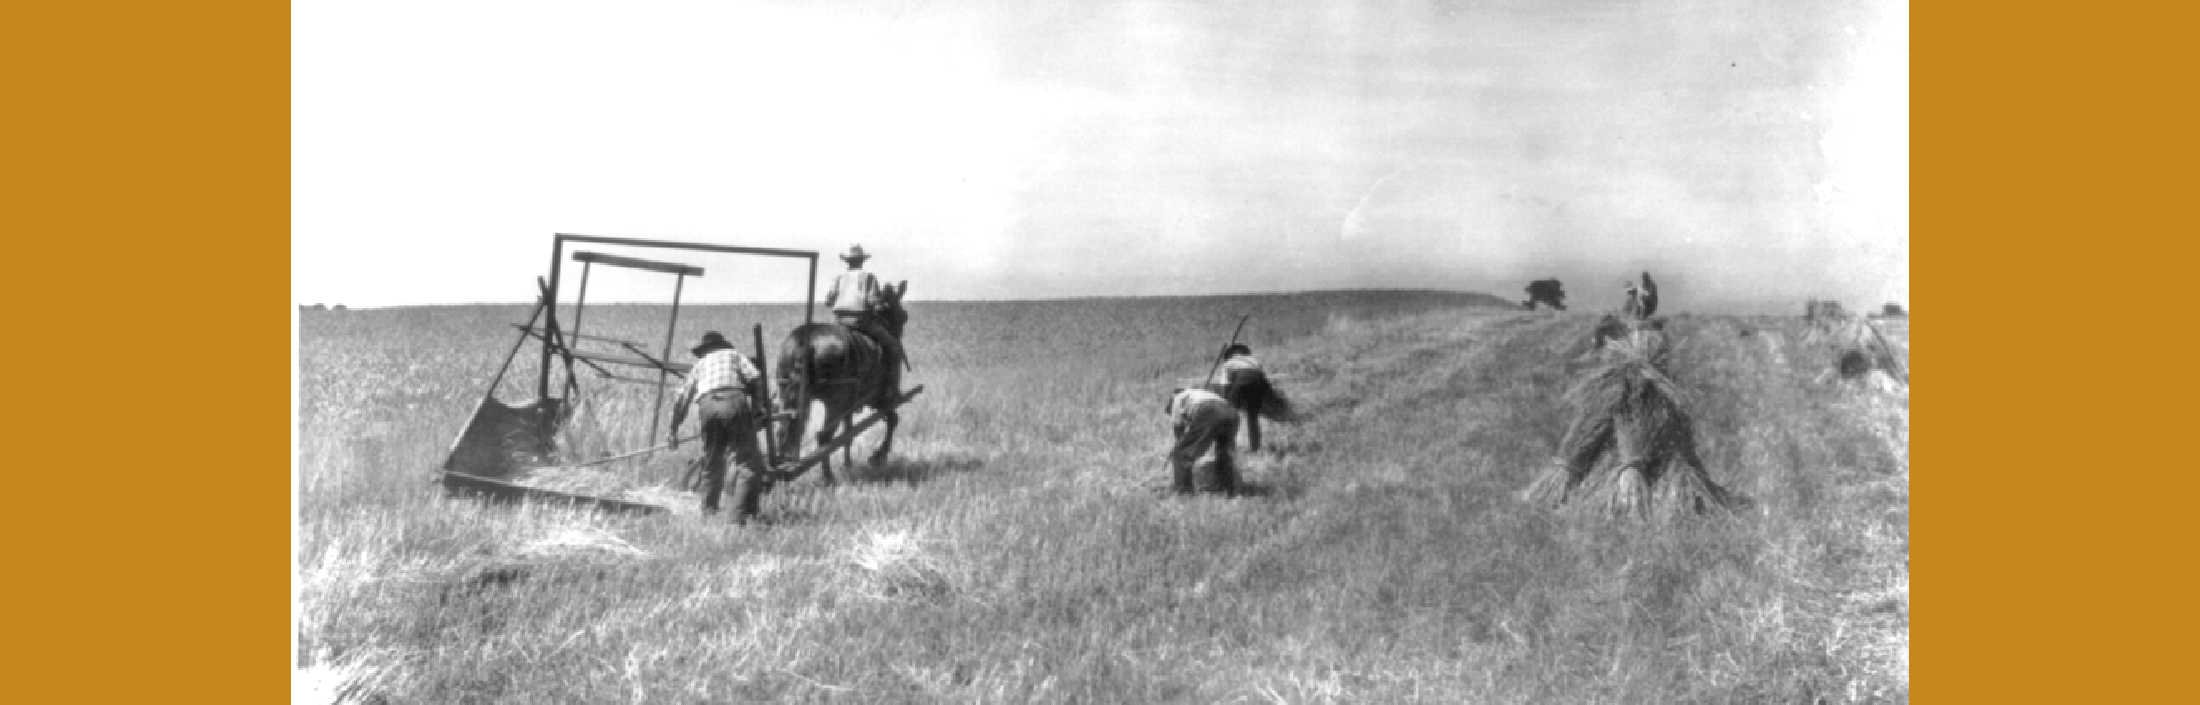 Harvest Time in the 1850s: The Key to Success Was … wait … Whiskey on the Job?